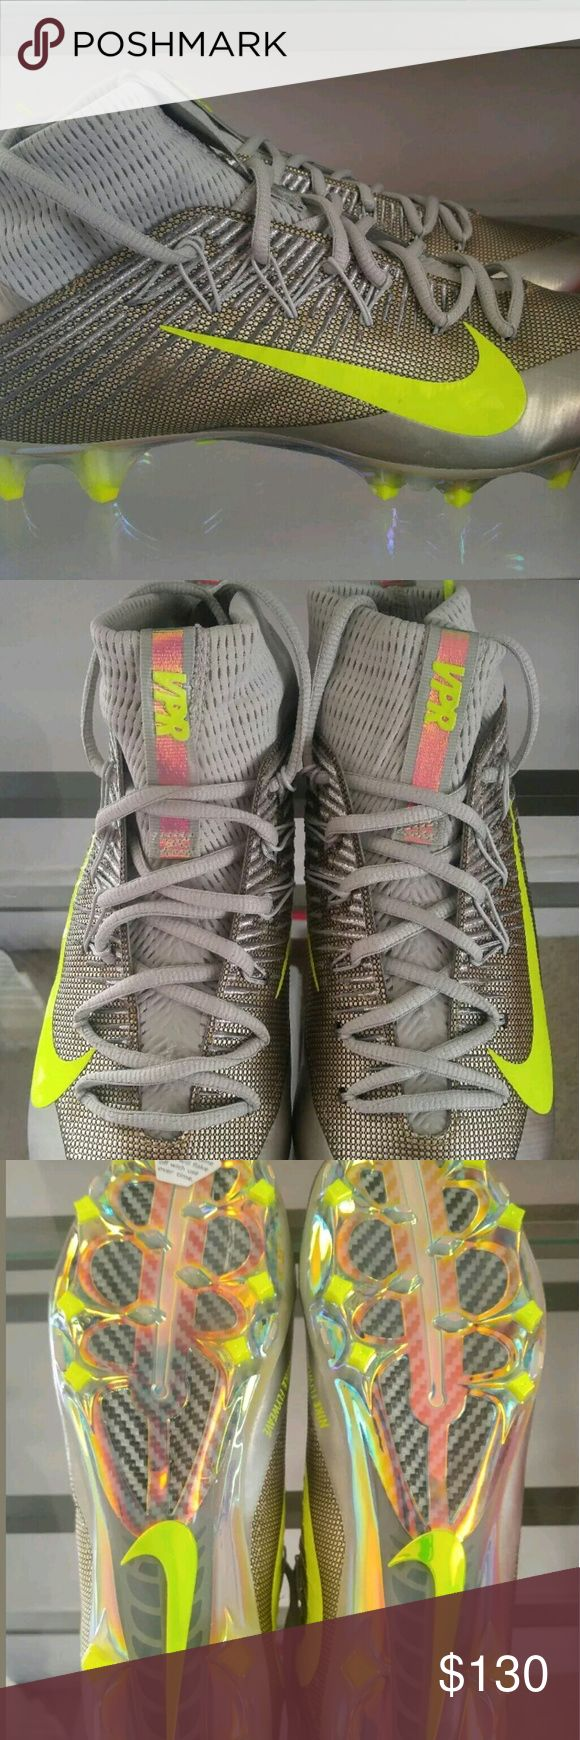 Nike Men's Football Cleats Untouchables 2 sz 10.5 You are buying Nike Vapor Untouchables 2 Grey/Volt 824470-010 Size 10.5 Originally 200.00 BRAND NEW with box and VPR bag!    Size: Adult Men's 10.5  Colors: Wolf Grey/Black/Gris Pale/Platine MTLQ/Volt   Style: 824470-010  Features: Flyweave tech (space stuff they use in space suits!) Comes with VPR bag, Bottoms of cleats holographic, VPR on tongue, and back loops   These shoes are QUALITY, you can see in the pictures tight seams,  great…